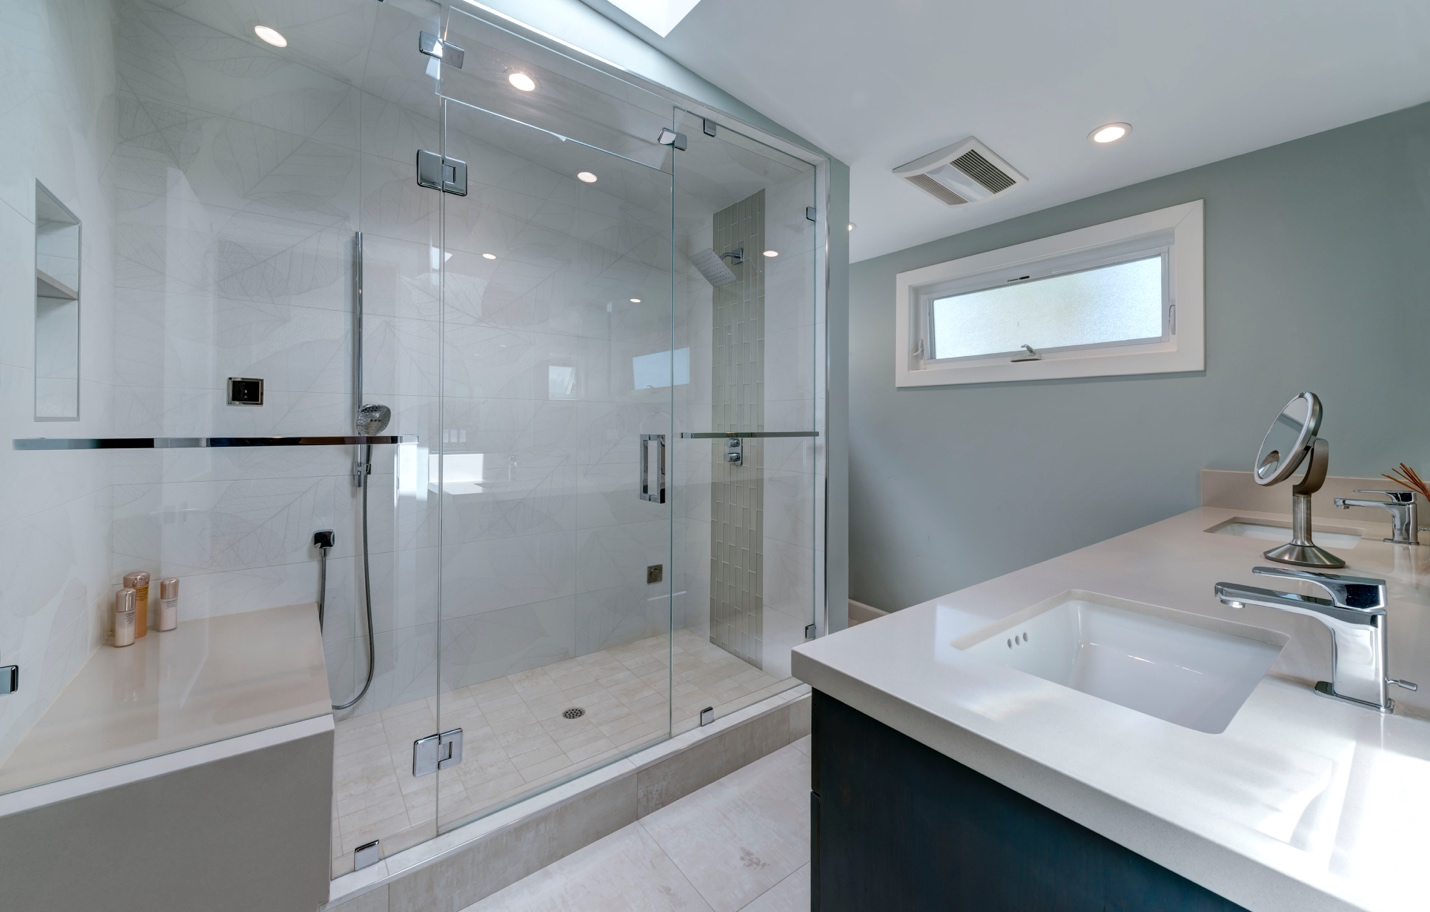 Modern bath room, interior design, Sunnyvale